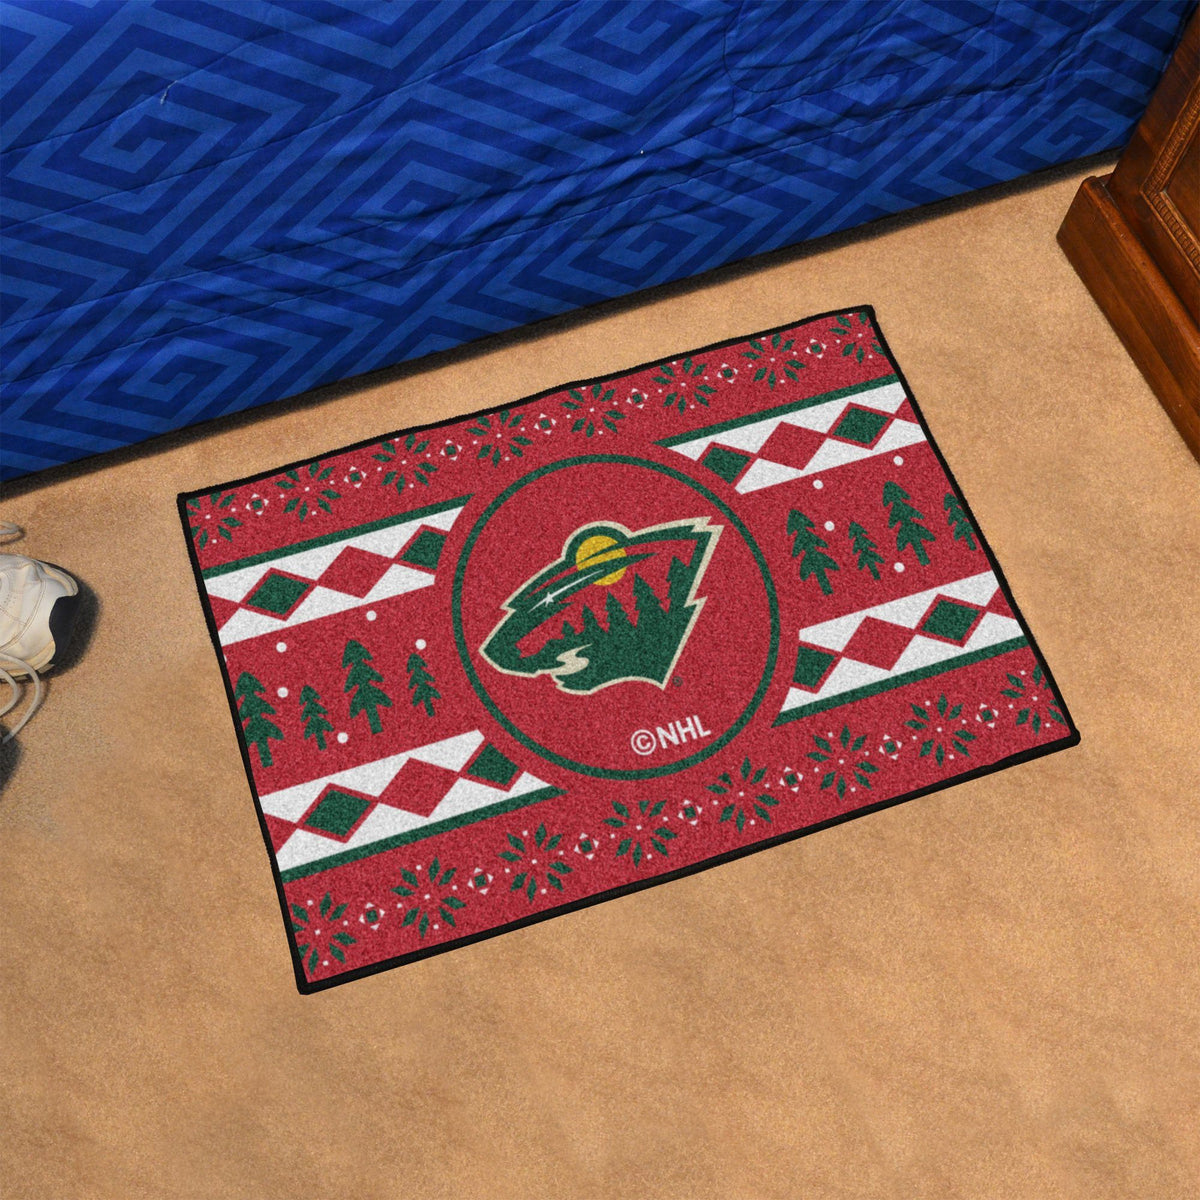 NHL - Holiday Sweater Starter Mat NHL Mats, Rectangular Mats, Holiday Sweater Starter Mat, NHL, Home Fan Mats Minnesota Wild